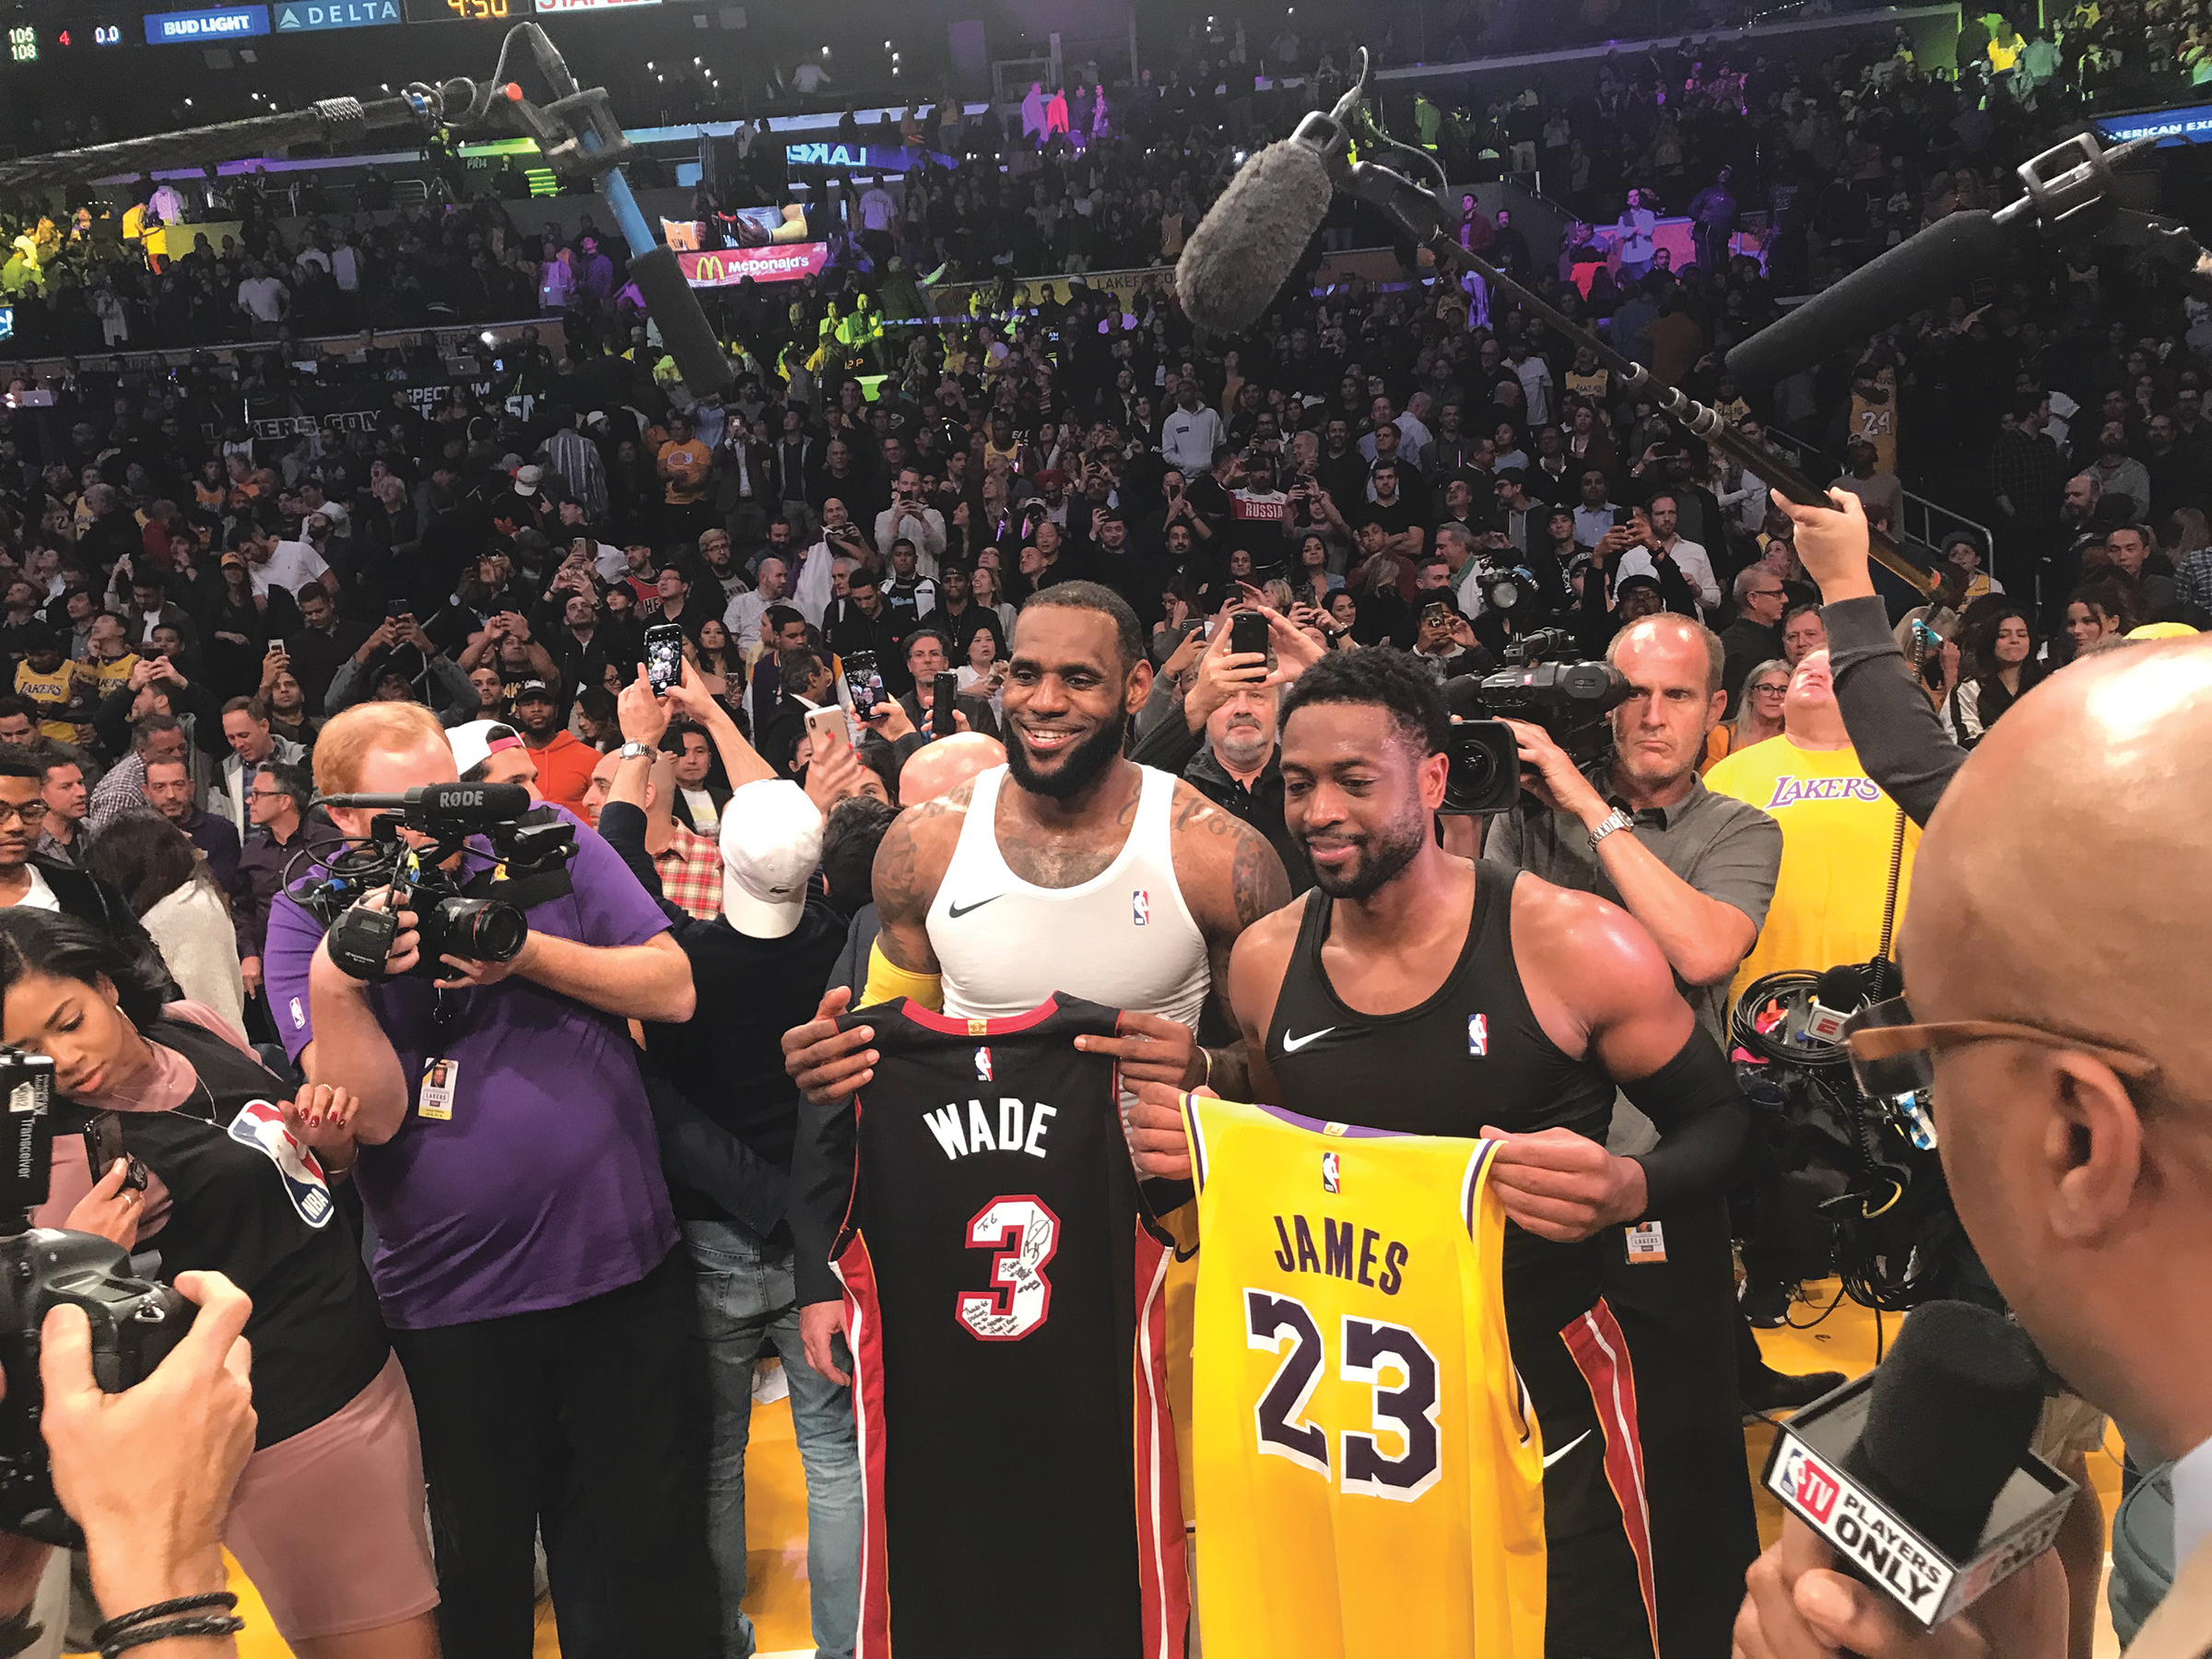 LeBron James and Dwayne Wade exchange jerseys after Wades final game at the Staples Center post game. (Cam Buford photo)